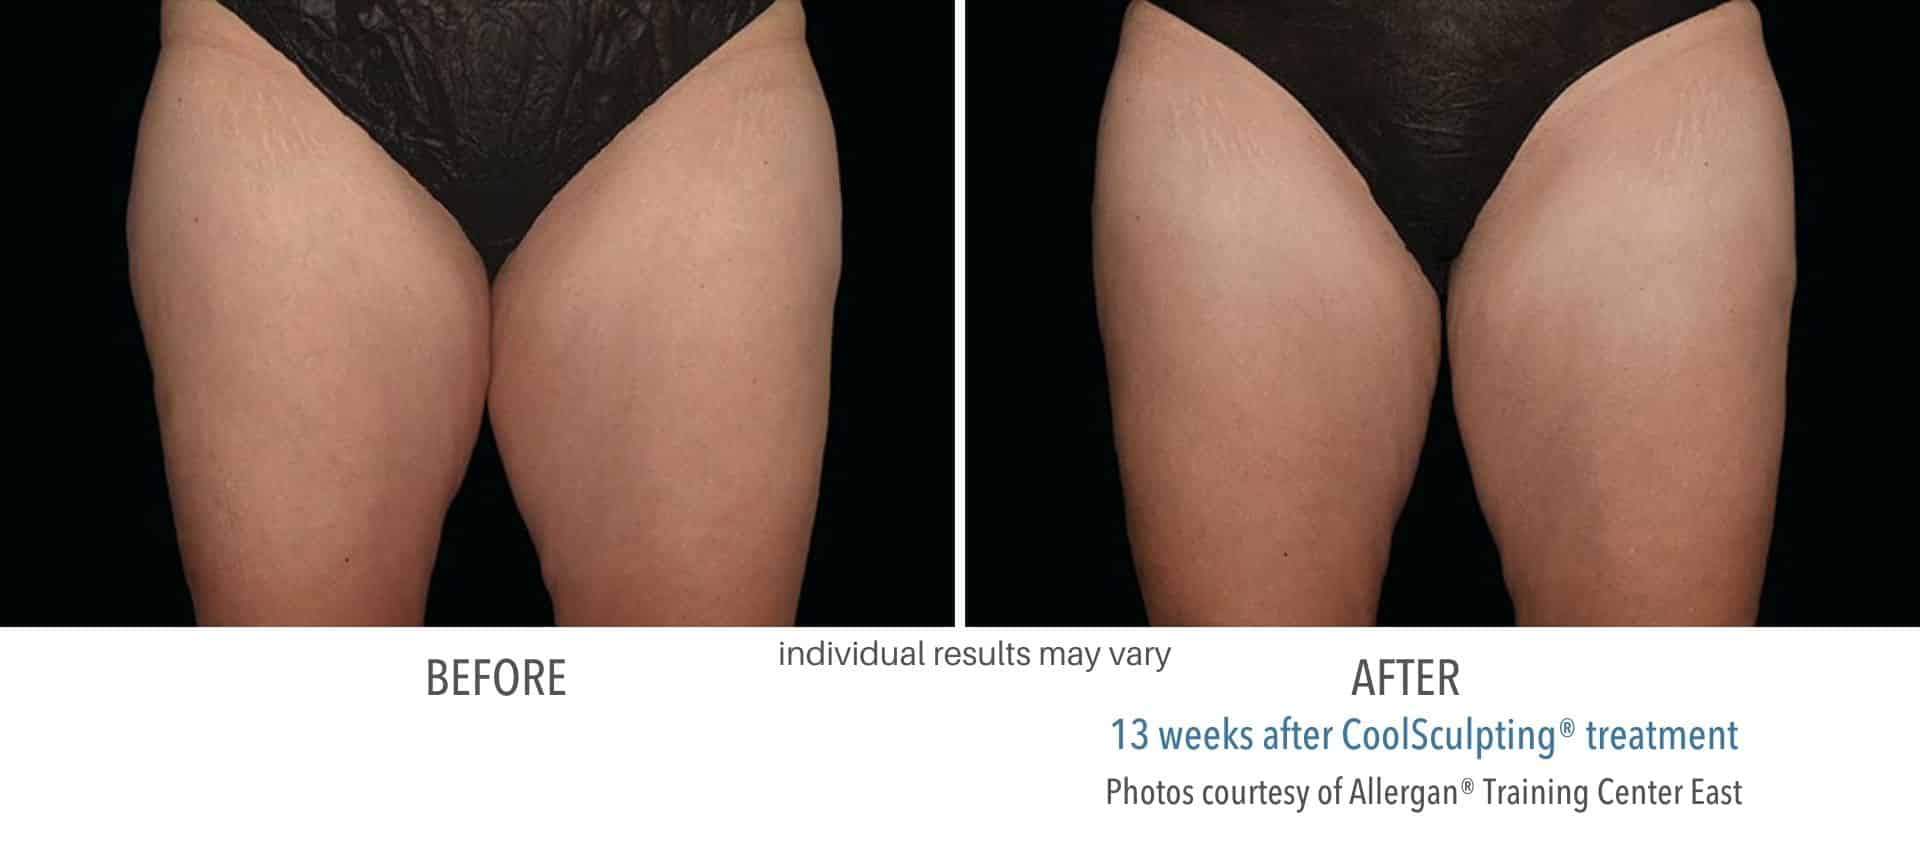 coolsculpting treatment for thighs in West Hartford